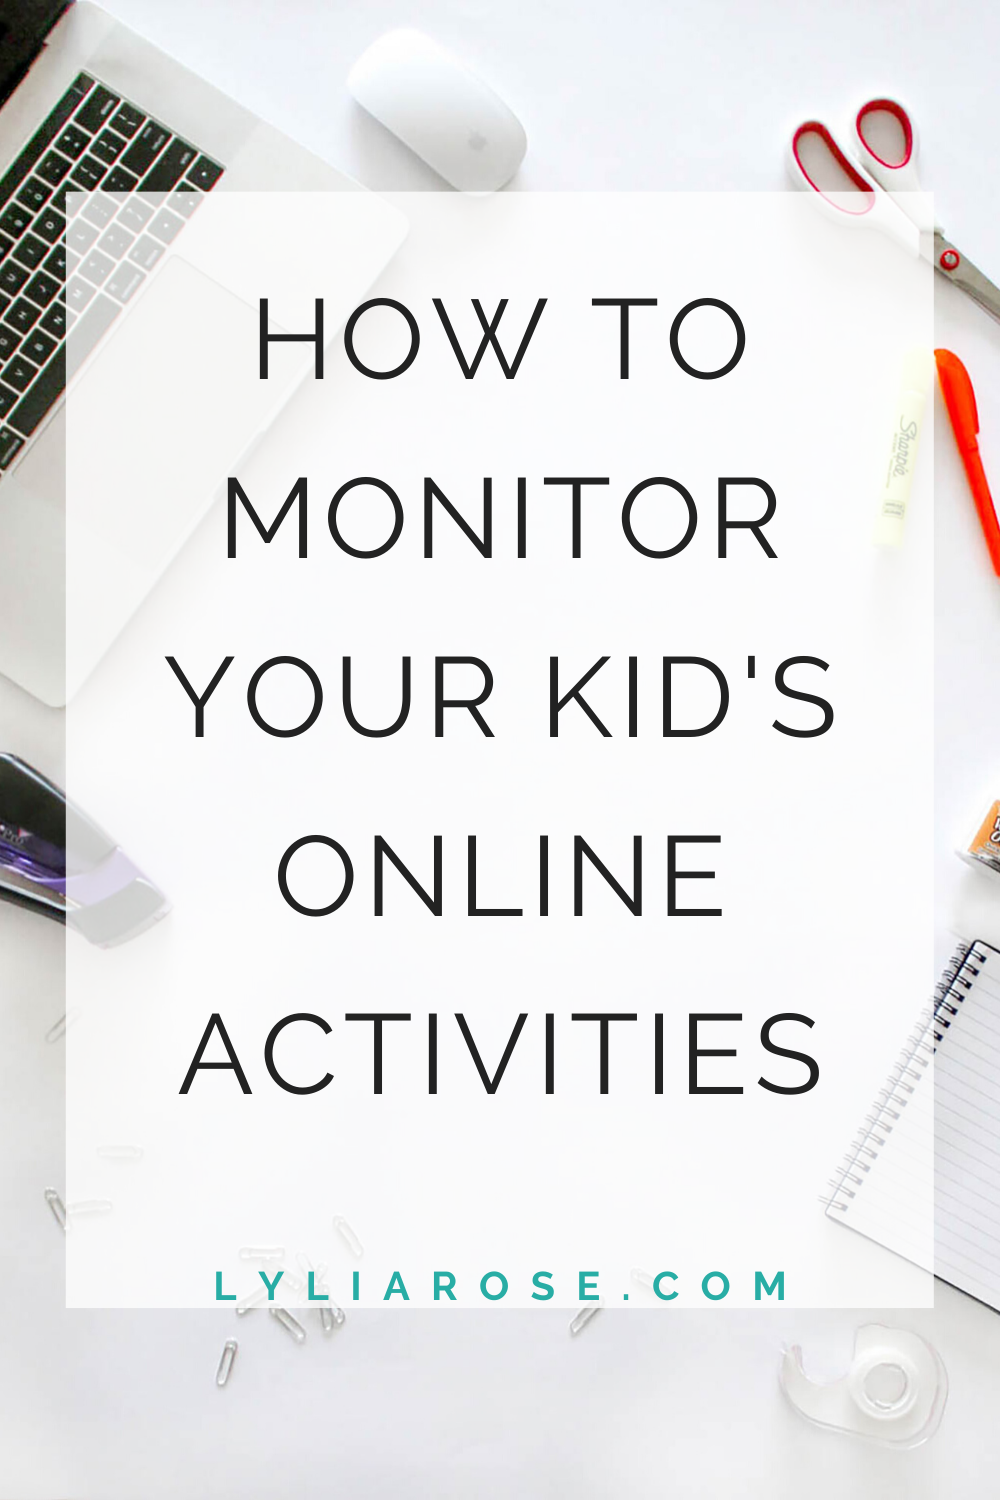 How to monitor your kids online activities